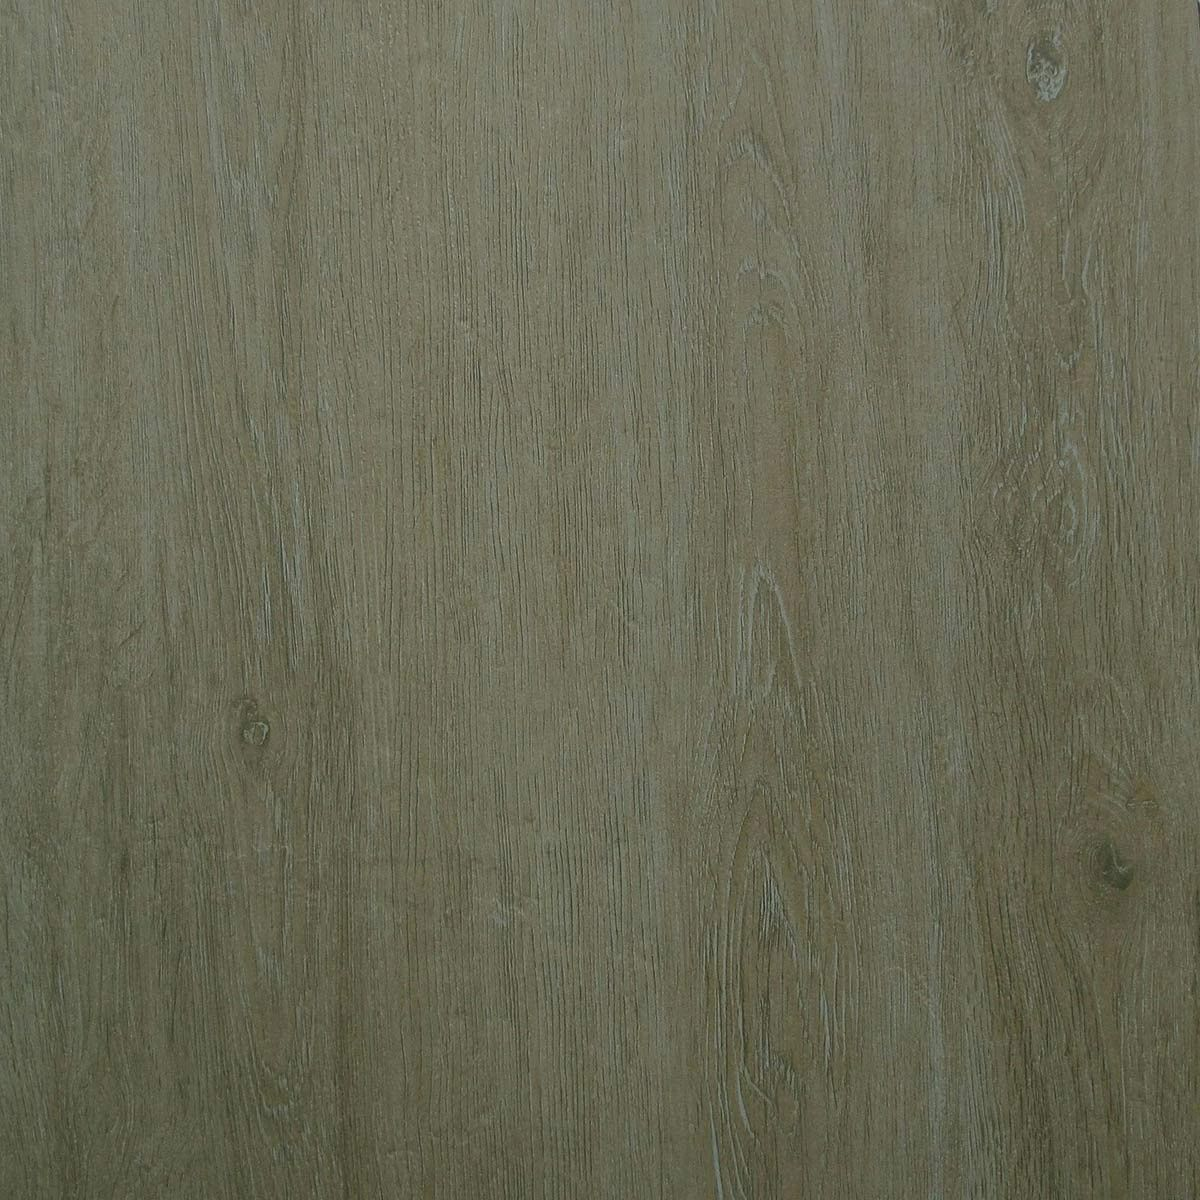 Rustic Glazed Porcelain Floor and Wall Tile - 24 ln. x 24 ln. (PM68031-1)